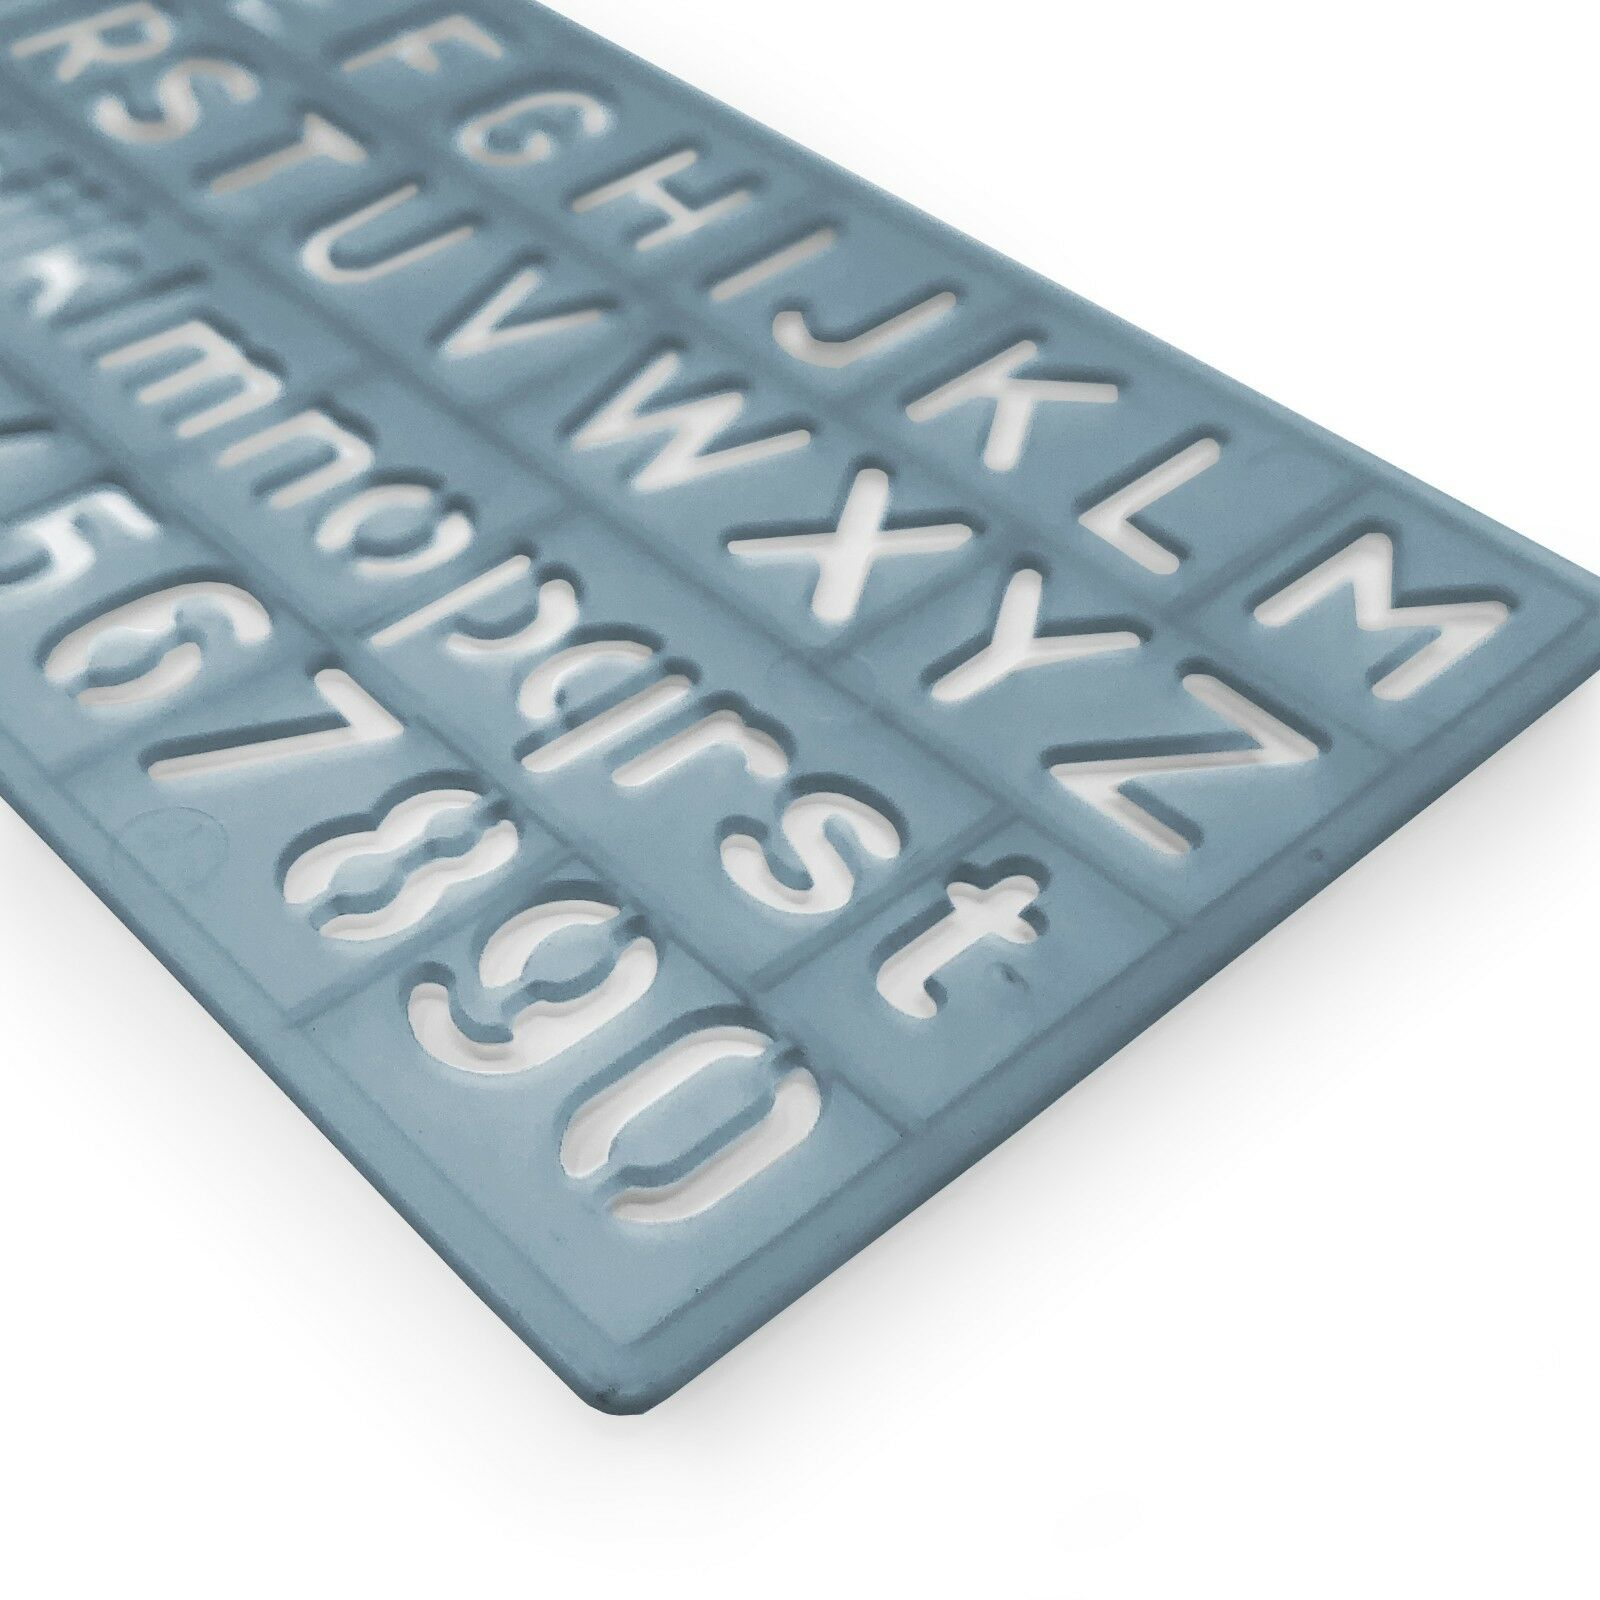 19x10.9cm Westcott Capital Alphabet and Number 20mm Stencil Transparent Blue